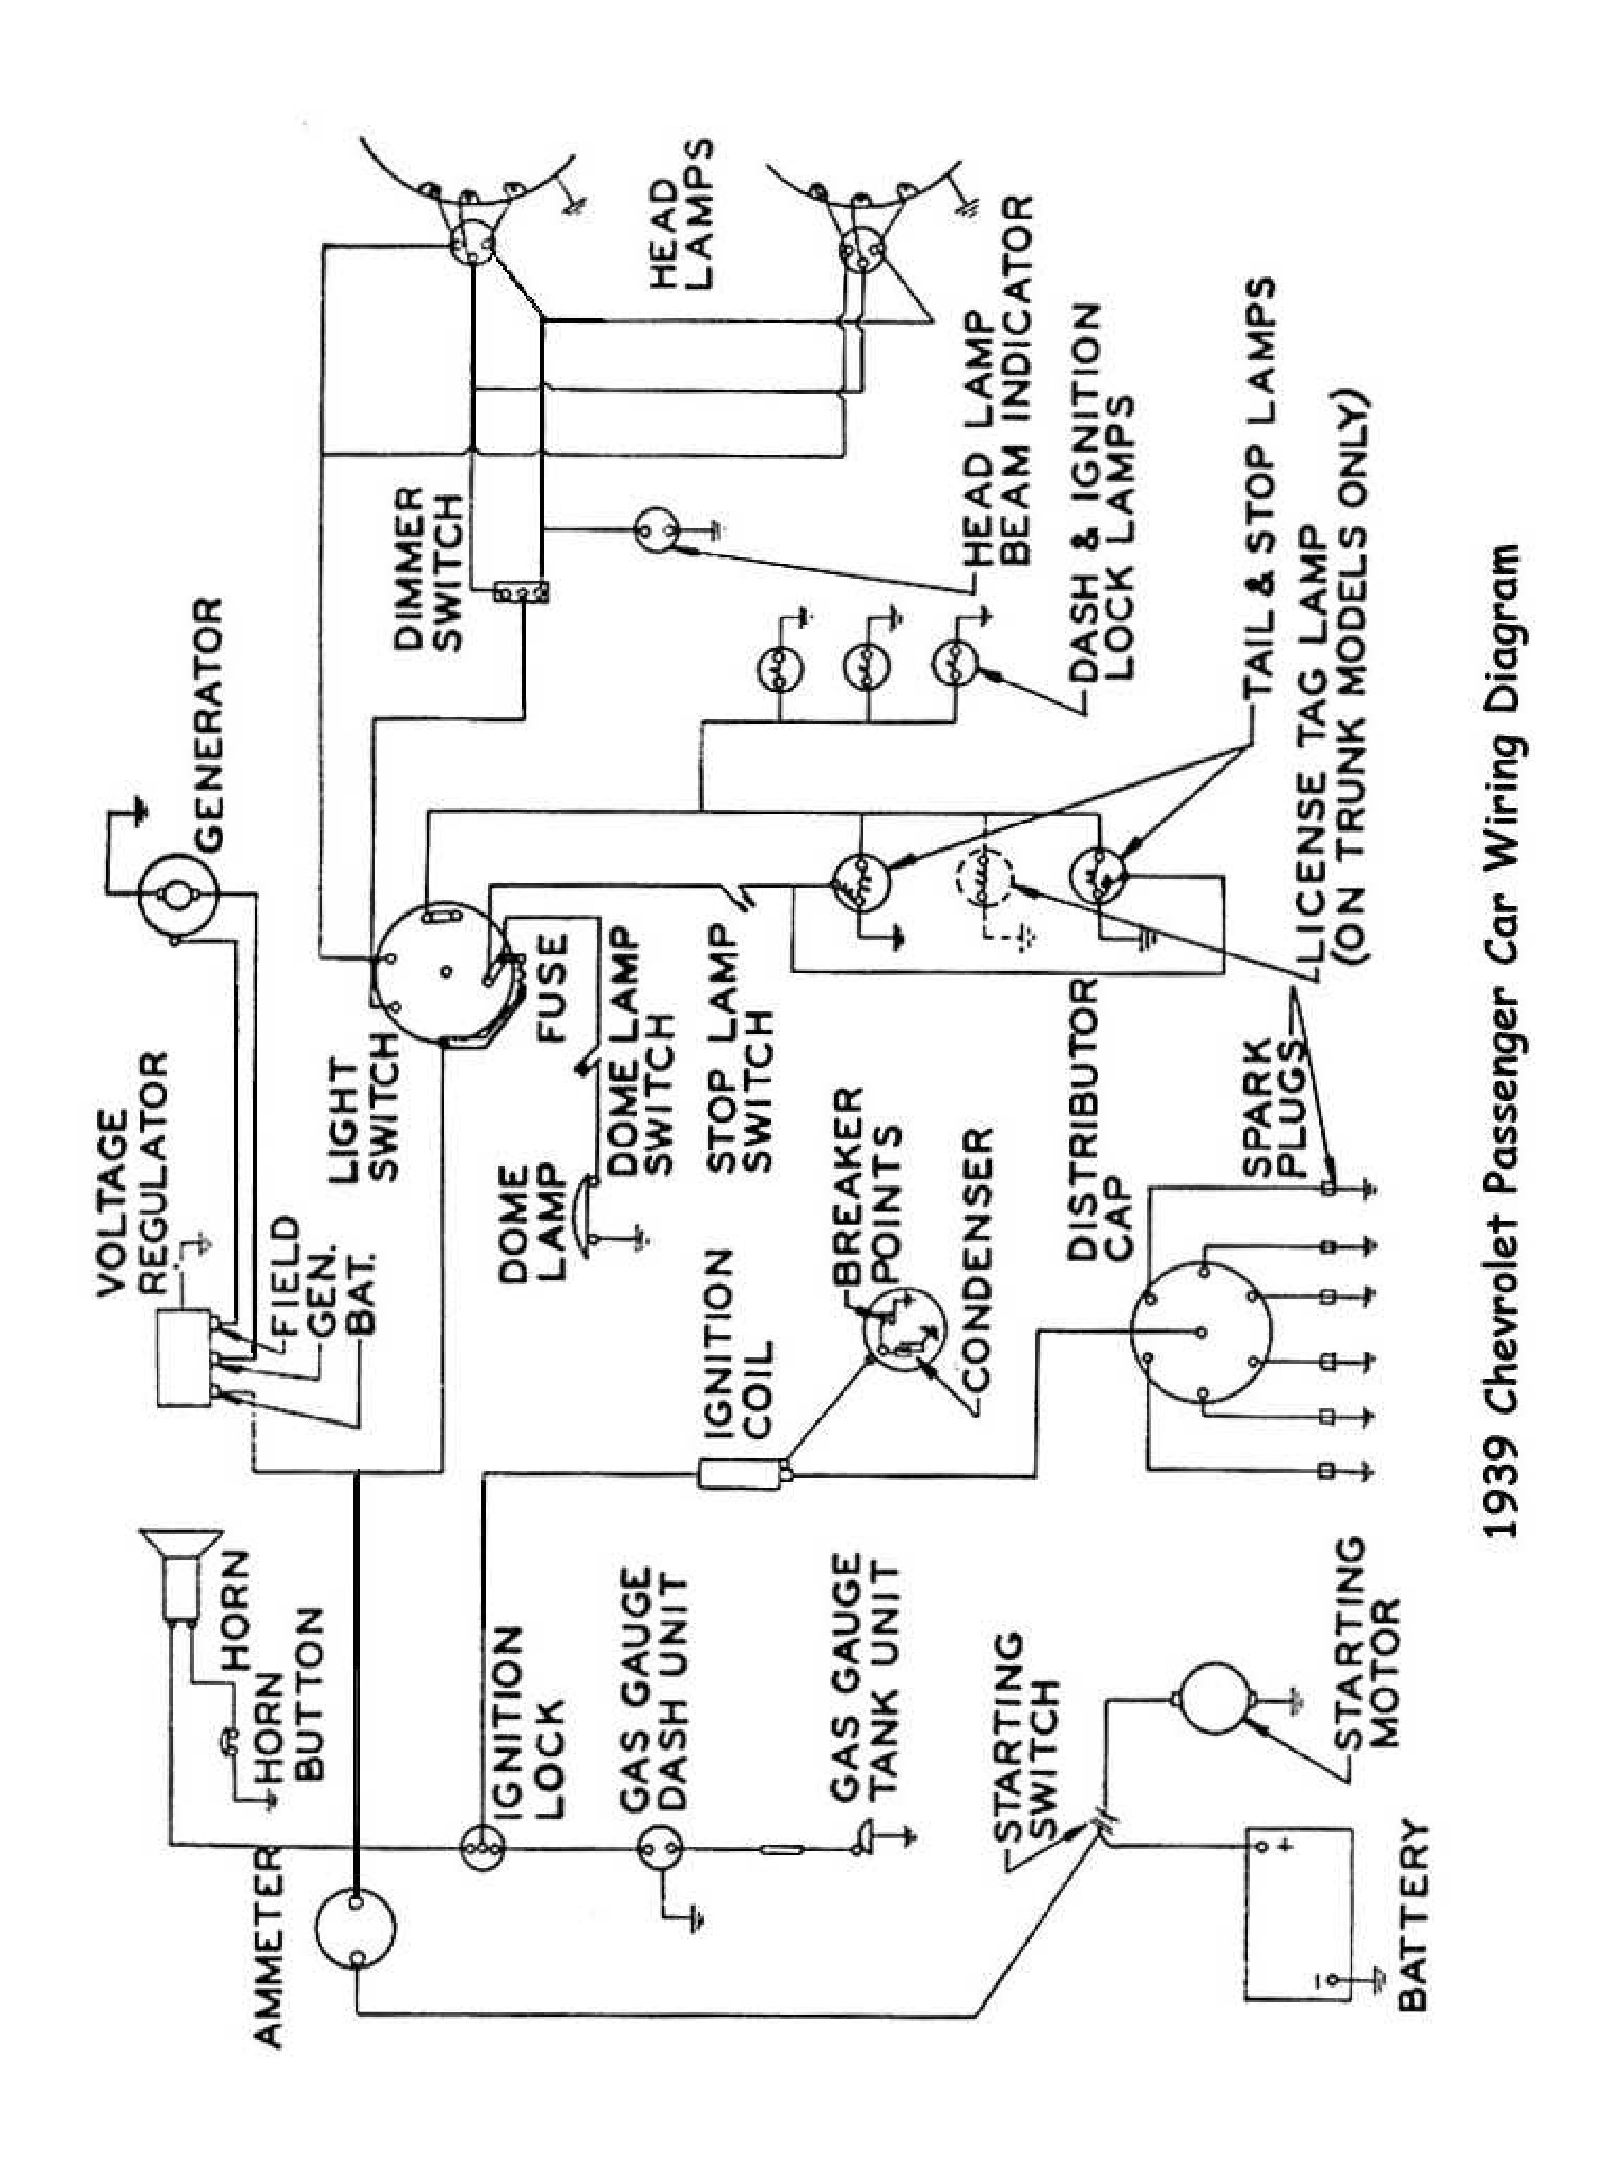 39car simple chevy wiring diagram chevy truck wiring \u2022 wiring diagrams basic auto wiring diagrams at edmiracle.co